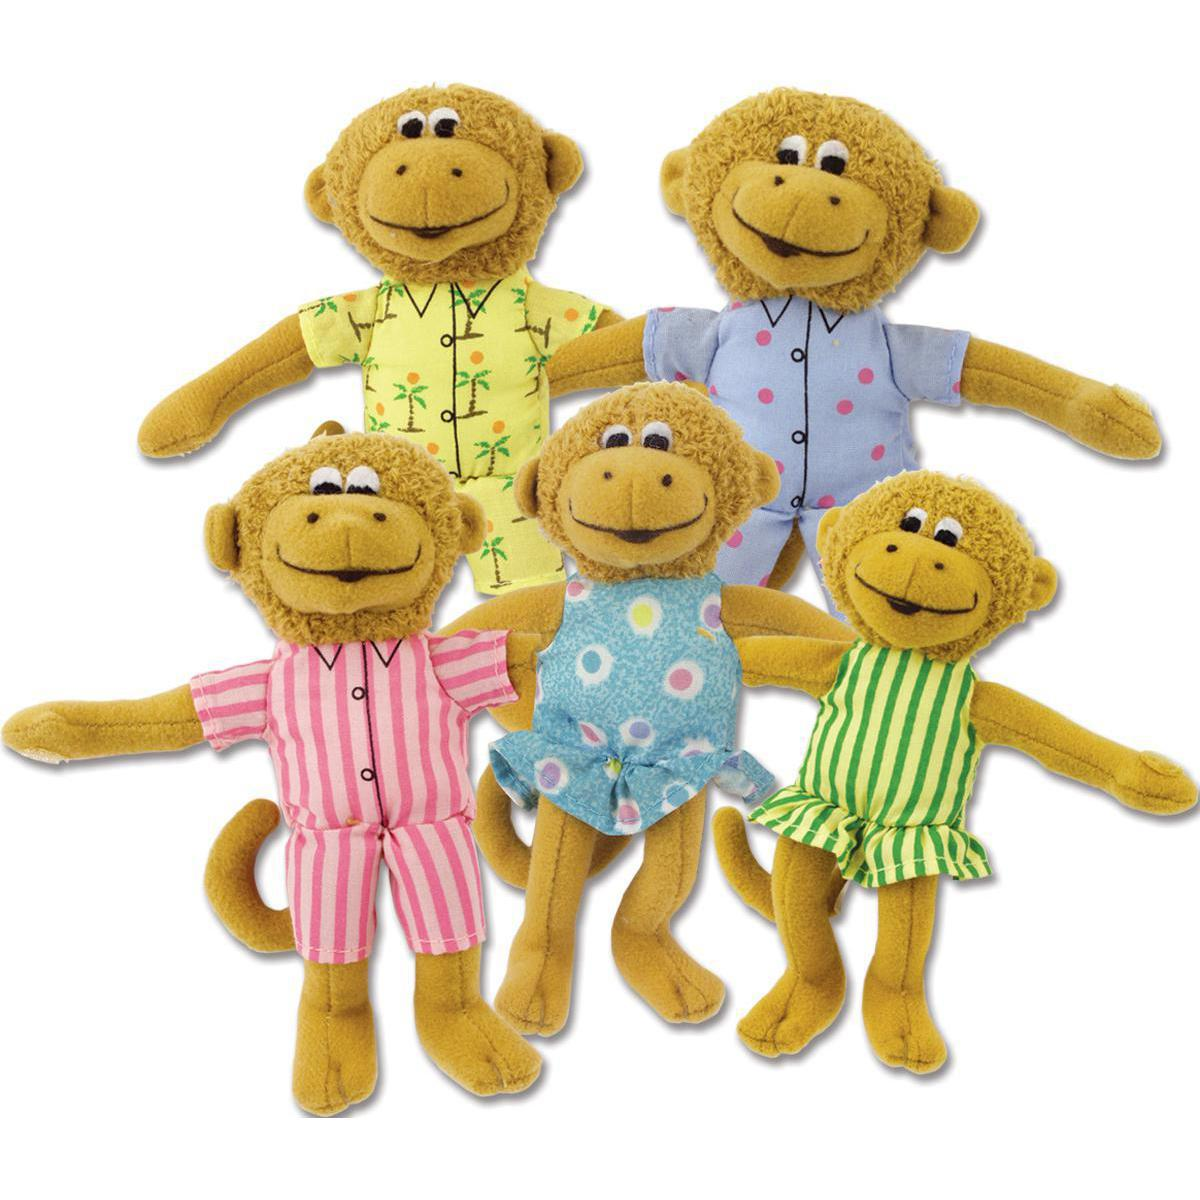 Five Little Monkeys Plush Set